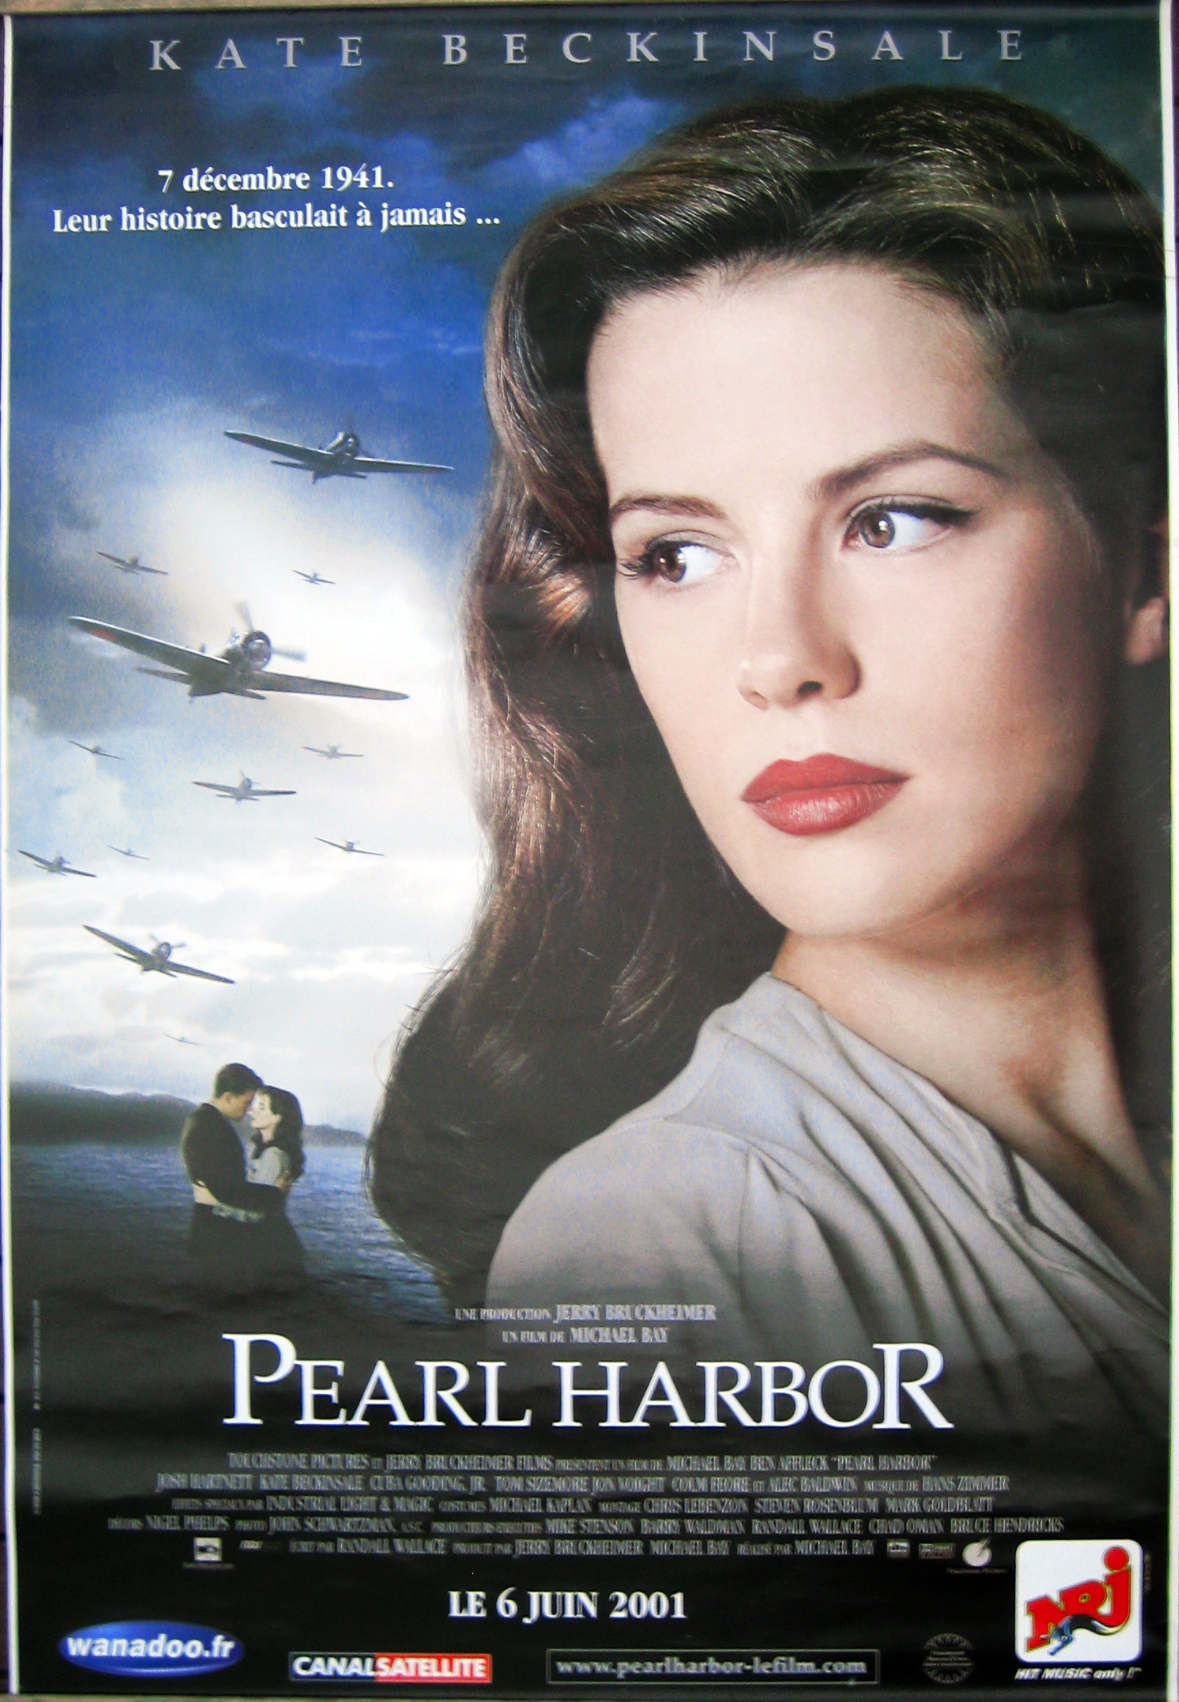 Pearl Harbor Movie Cast Z movie posters